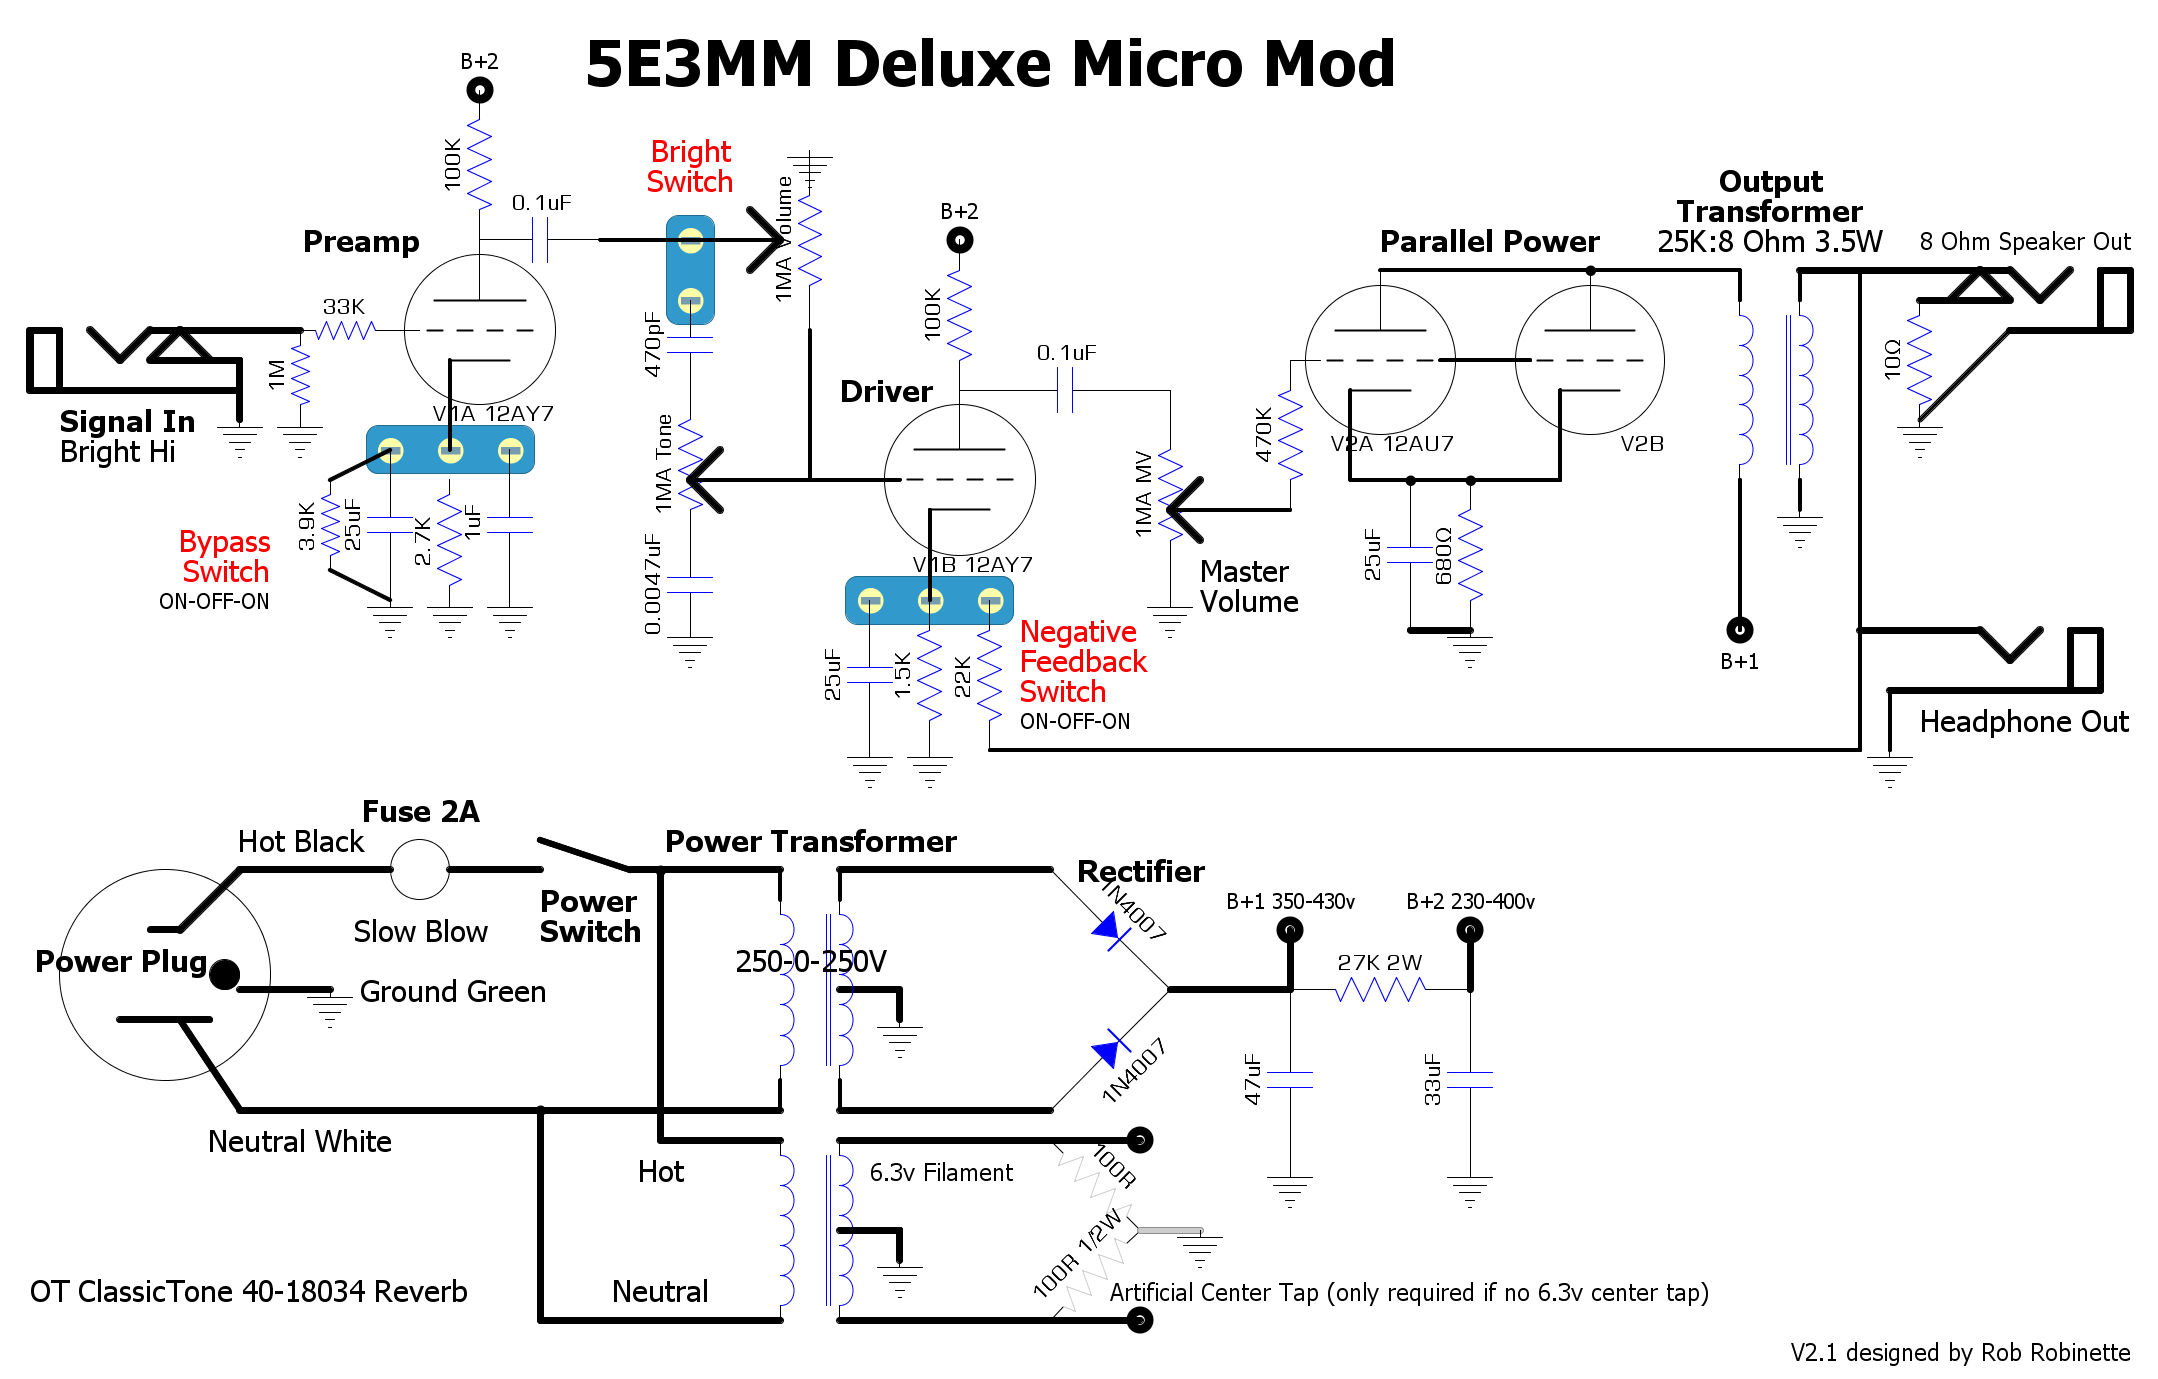 Deluxe Micro Variable Transformers Schematics Wiring Diagrams Download As Pdf By Bright Switch V1a Cathode And Negative Feedback Are Added In The Mod Version Of All Switches Give You Option